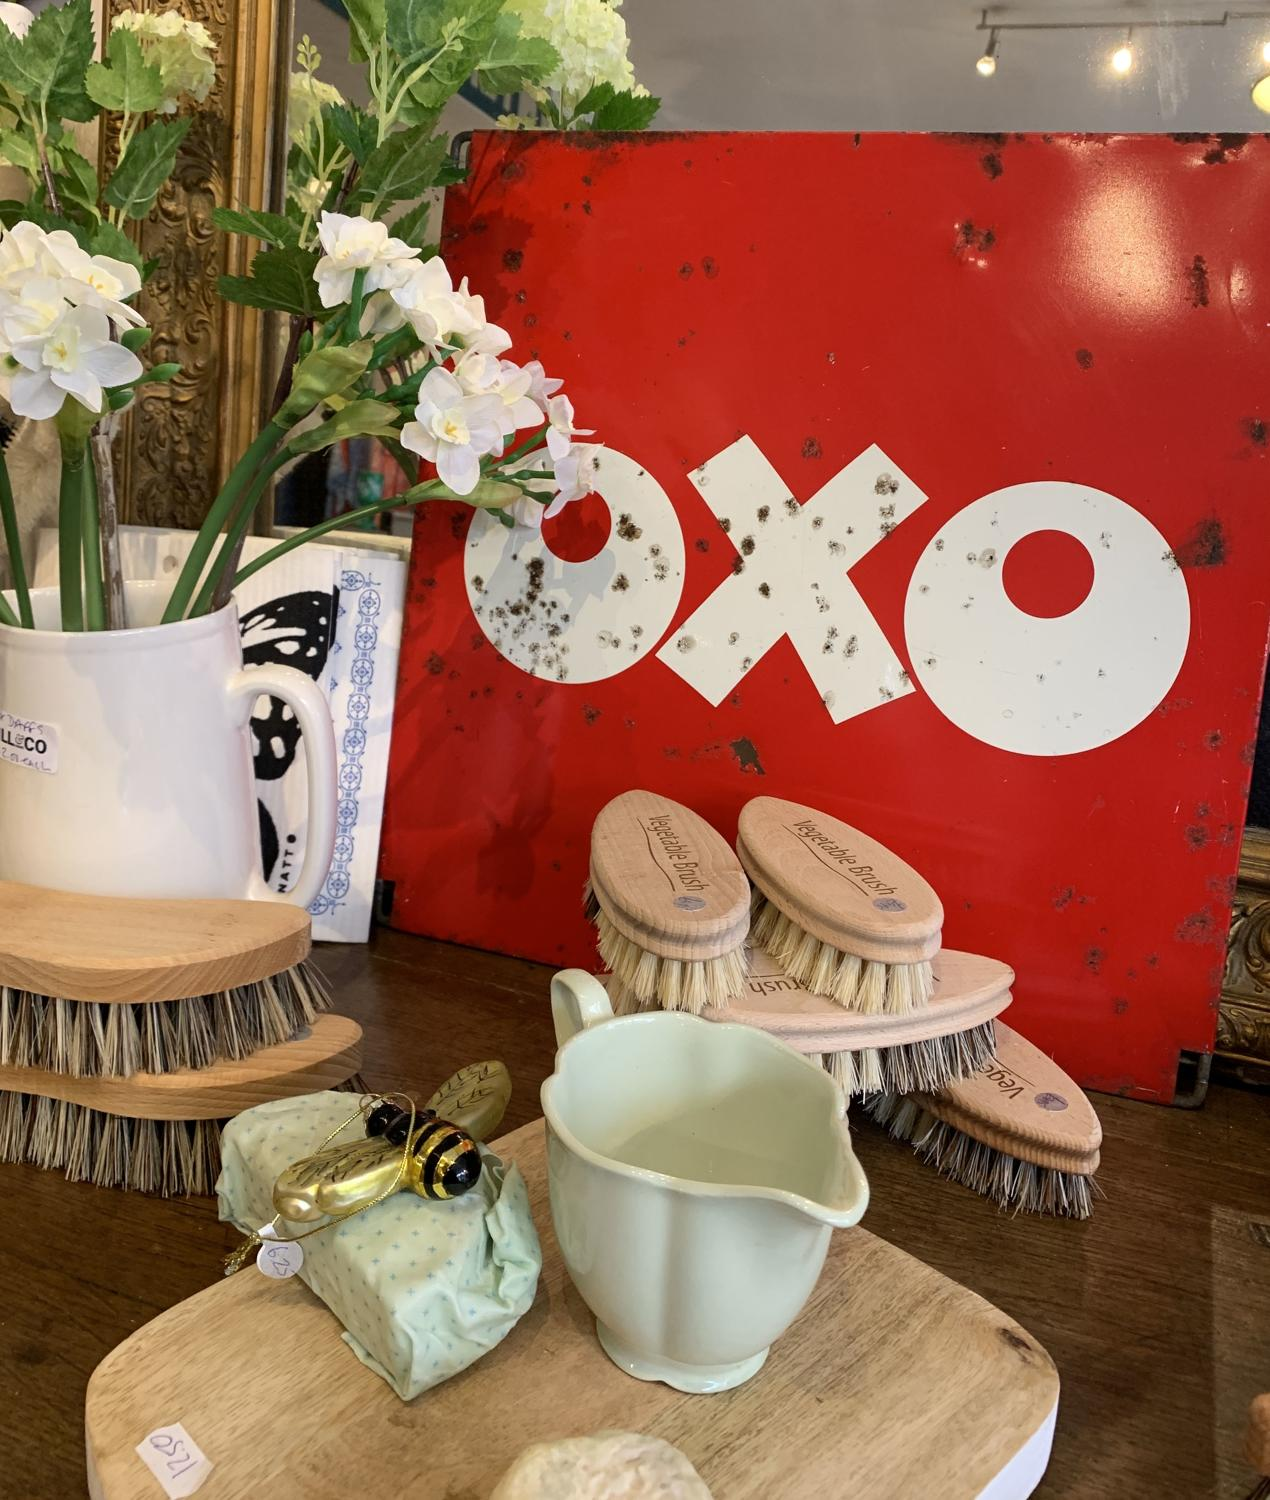 Vintage metal 'Oxo' sign